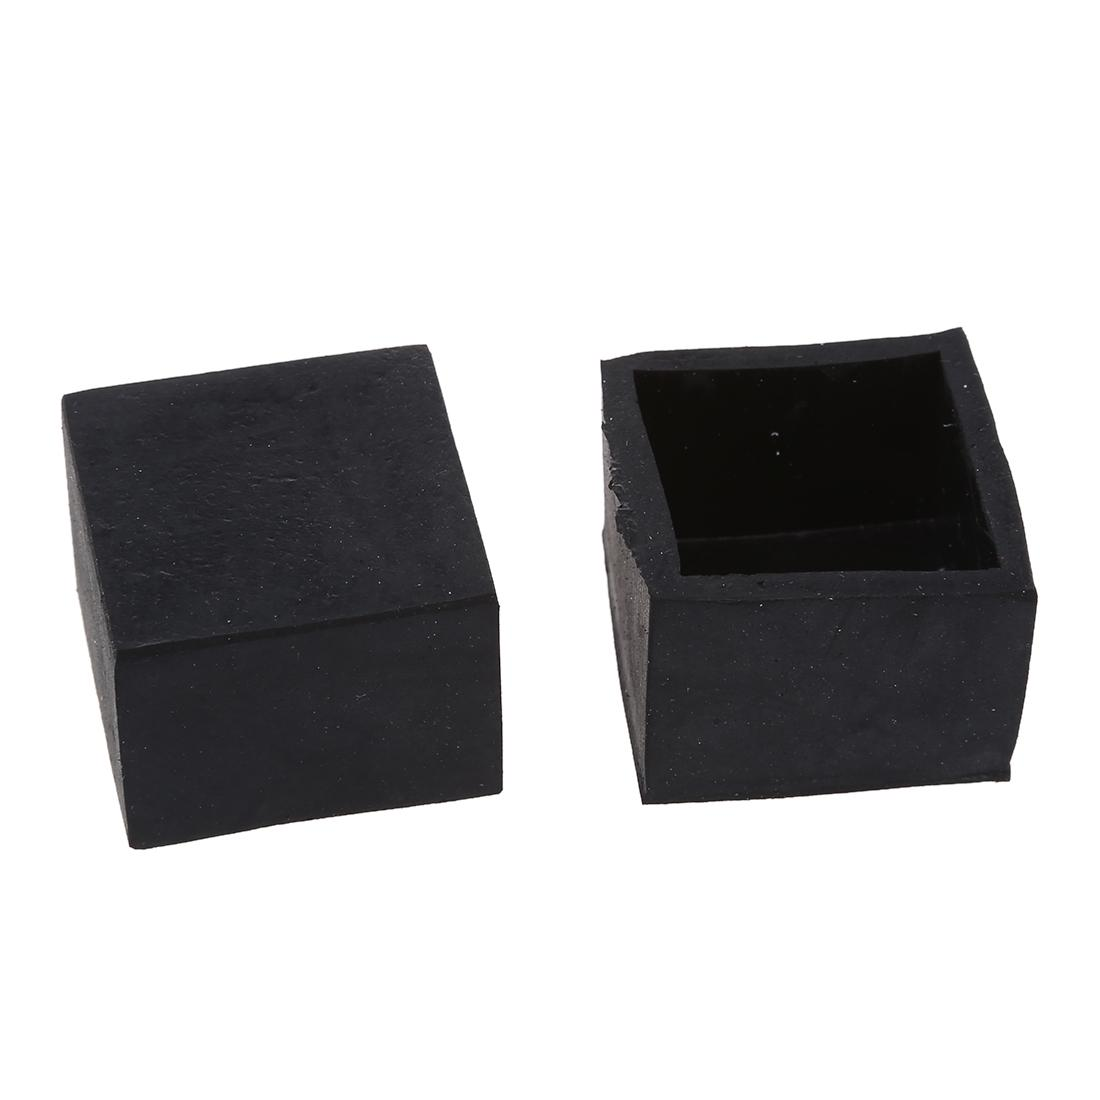 Black Chair Table Leg Rubber Foot Covers Protectors 28mm X 28mm Mats